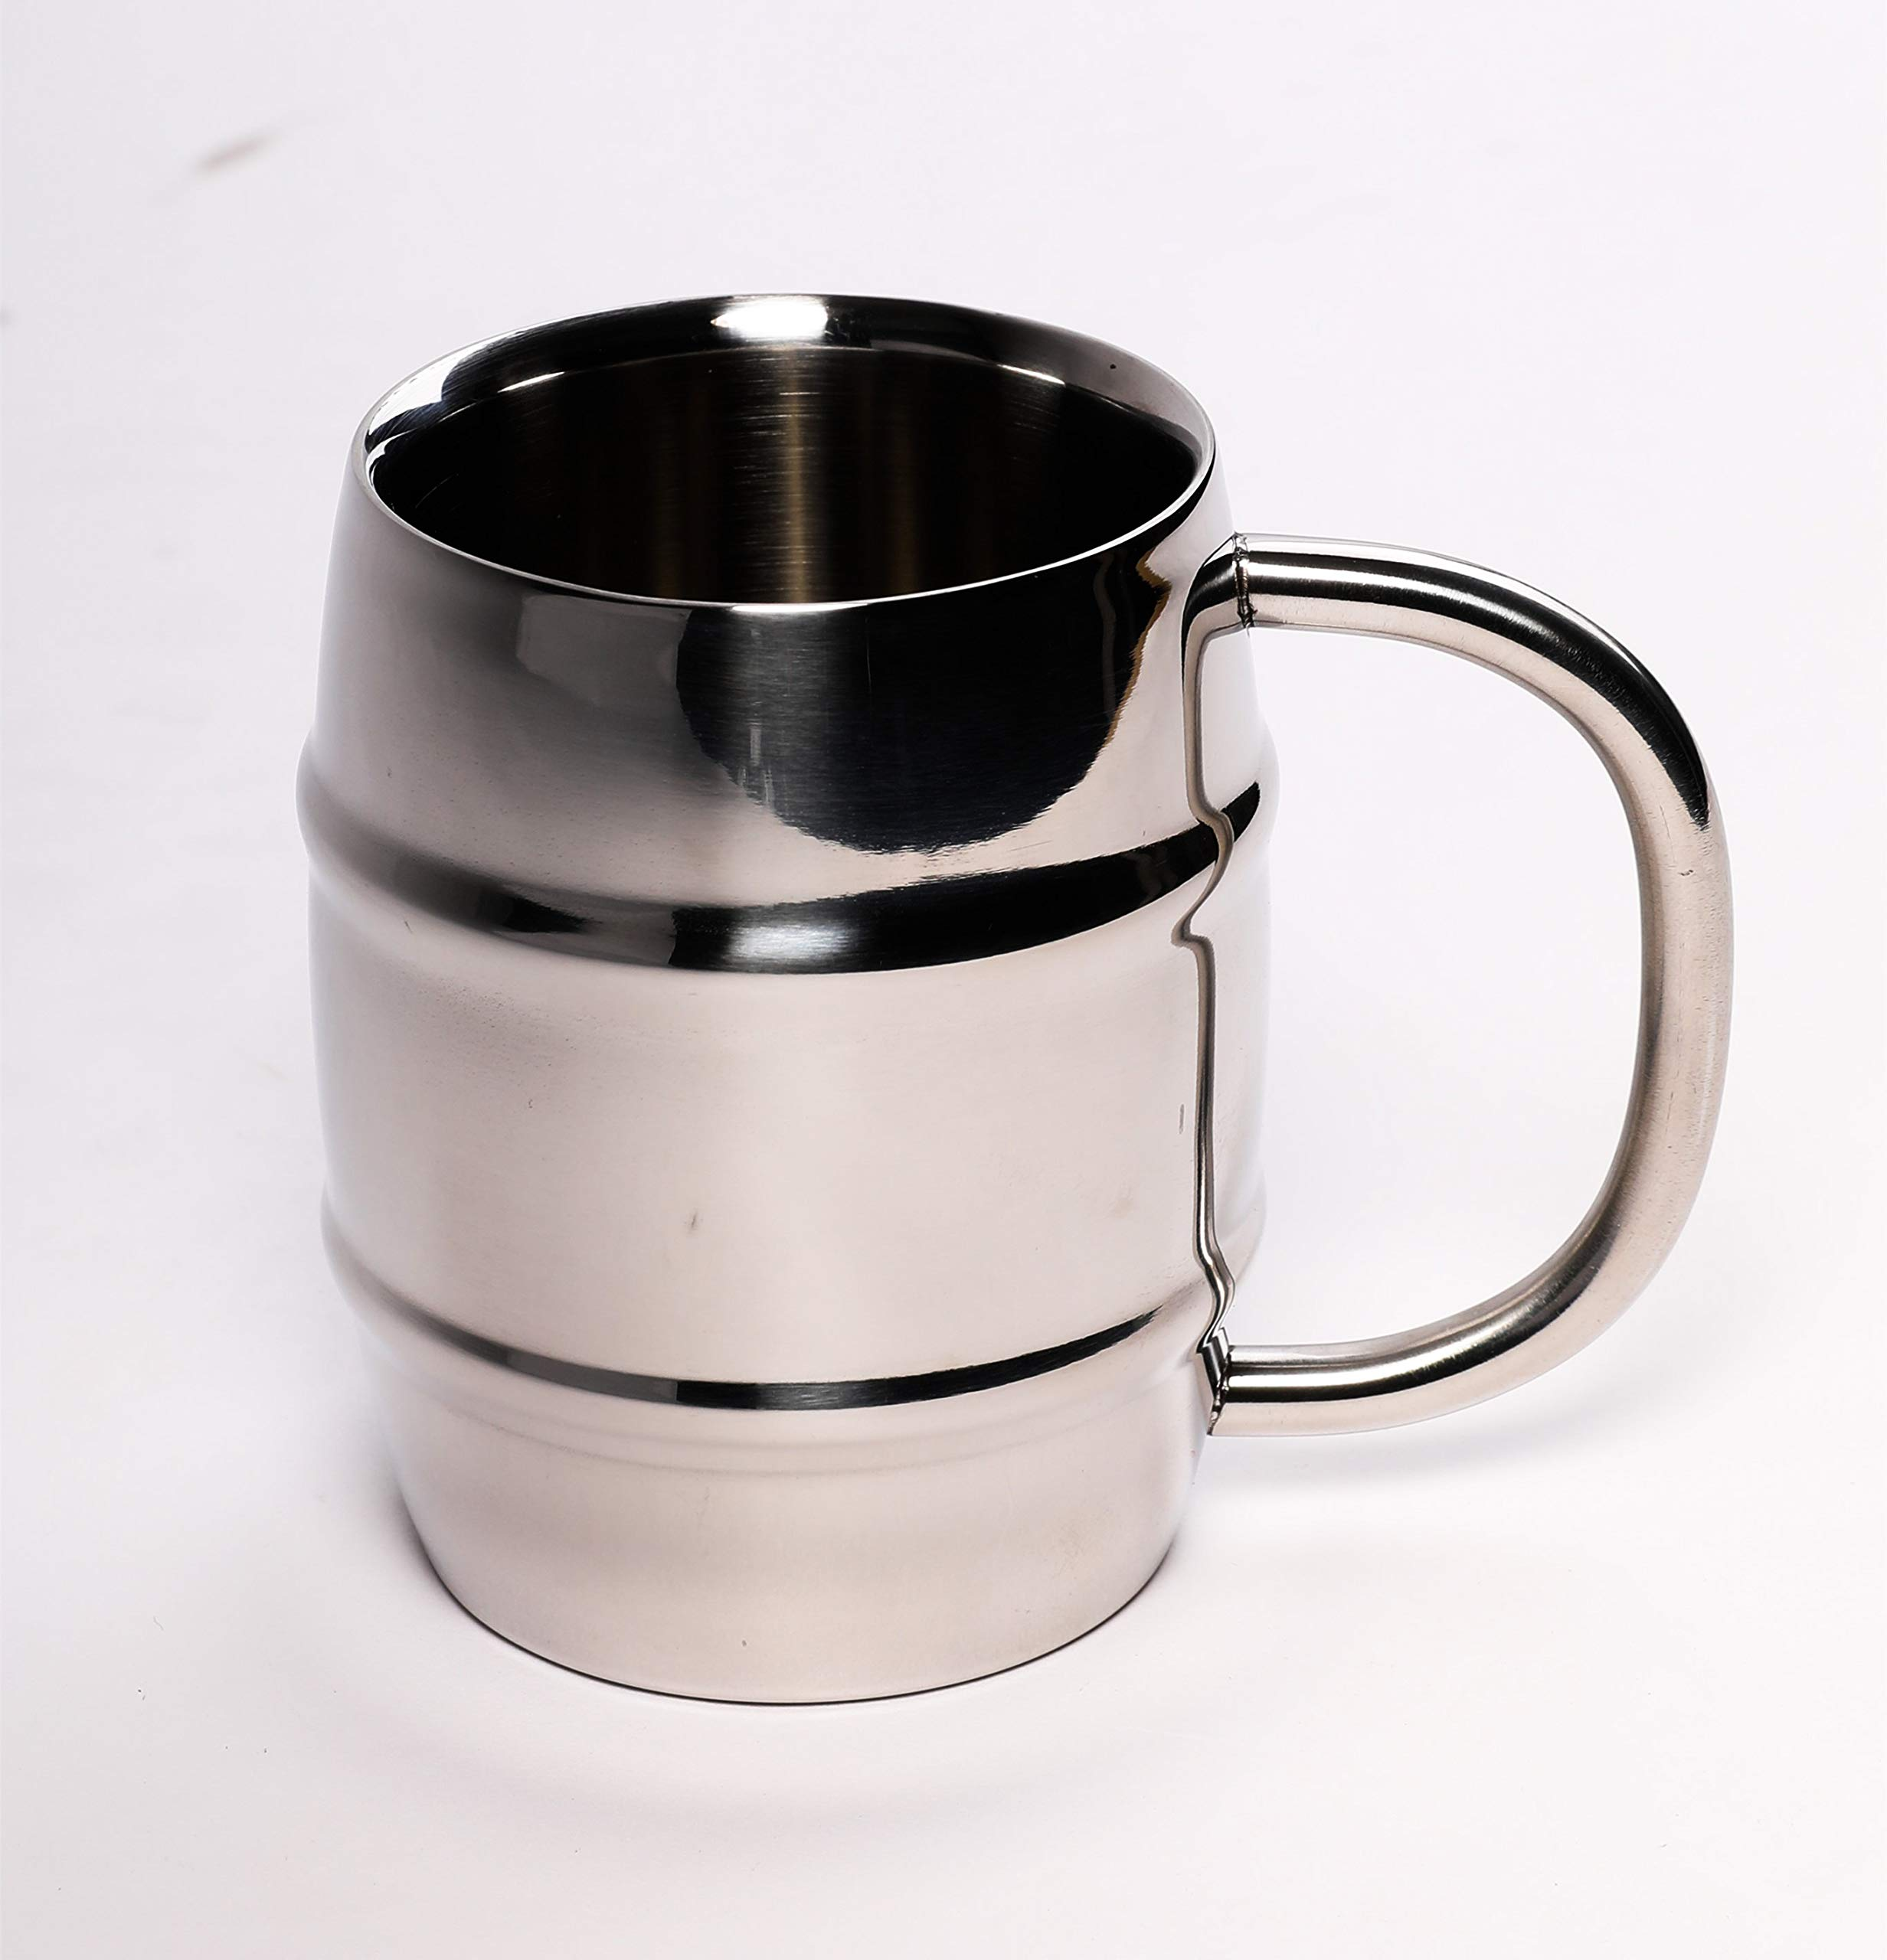 ANVENTI Double Wall Stainless Steel Insulated Coffee Mug (silver) A-CM-S300ML-2 300ml10oz 2PCS/CASE